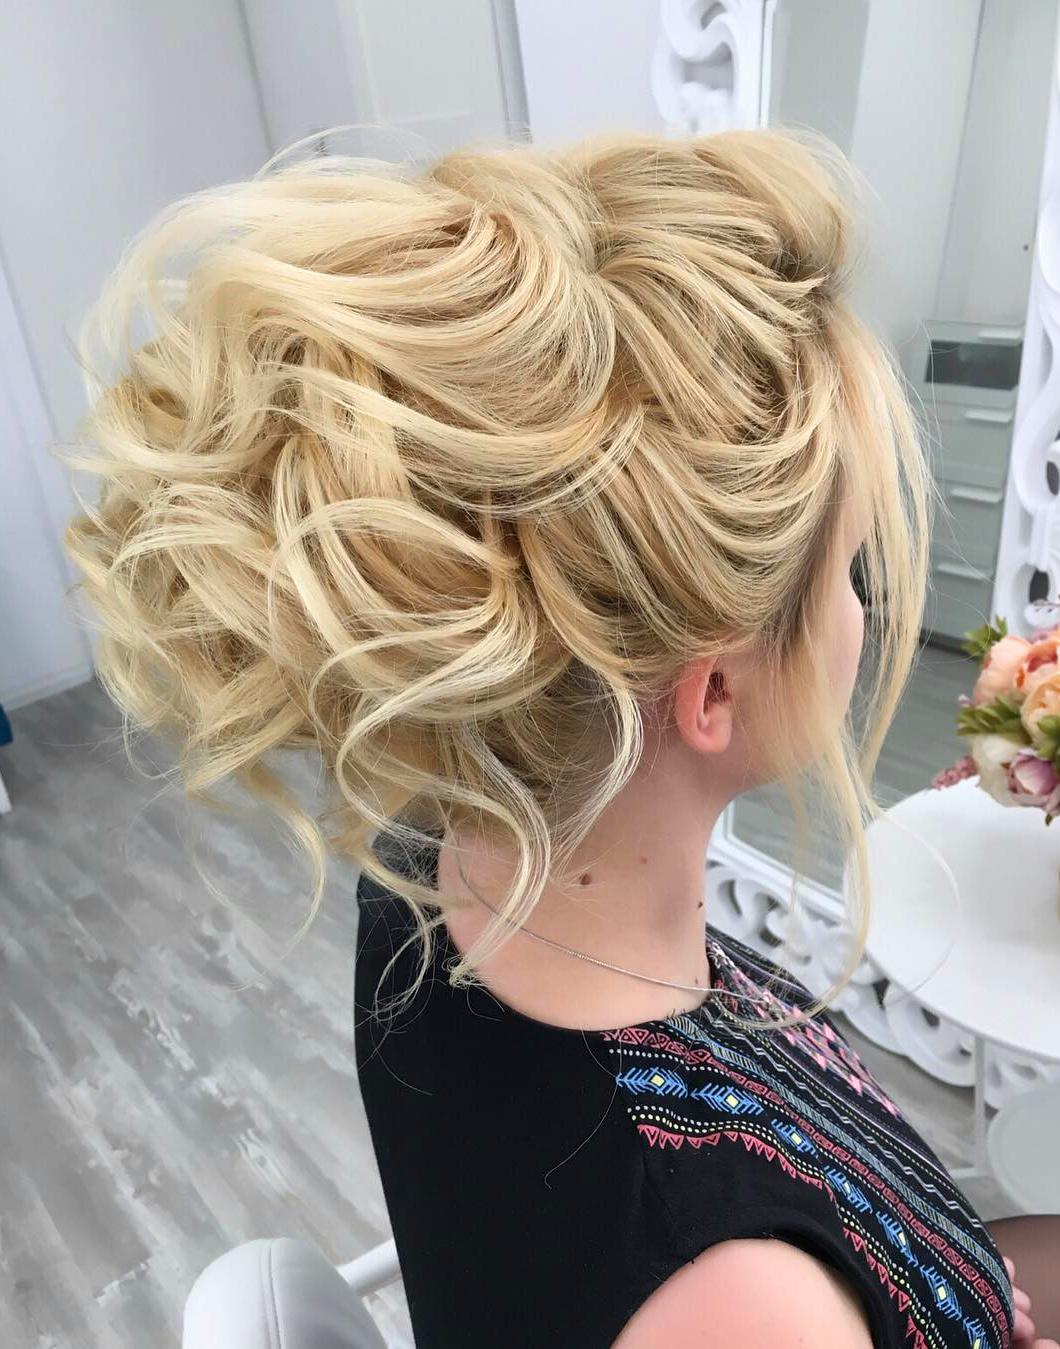 Wedding Hairstyles For Medium Length Hair #weddingforward #wedding #bride #weddinghair #summerweddinghairstyles #weddinghair #hairstyles #updo